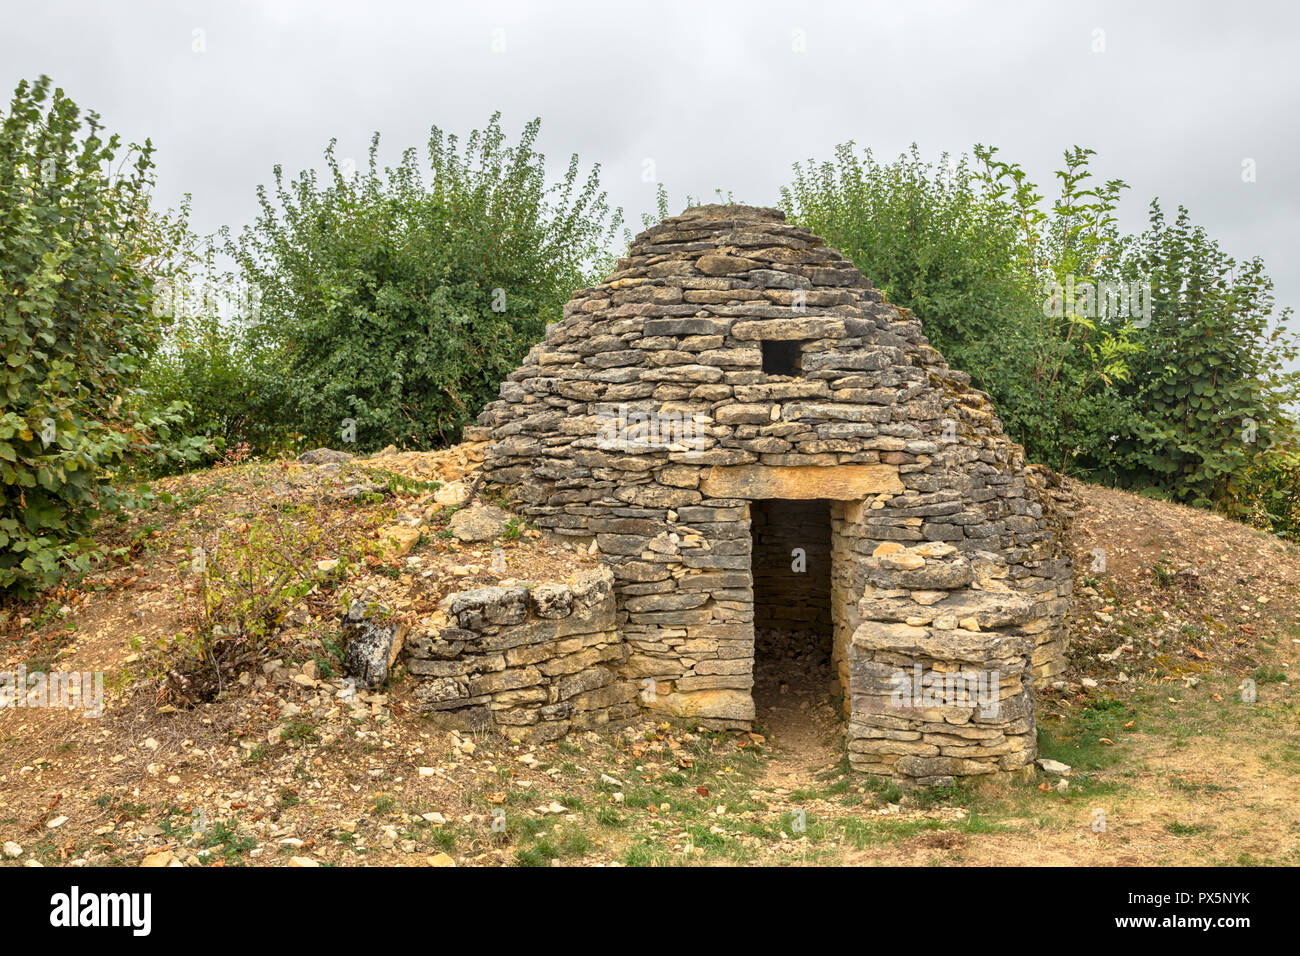 Dry stone wall hut known as Cadole at Plateau de blu, Champagne region, France - Stock Image